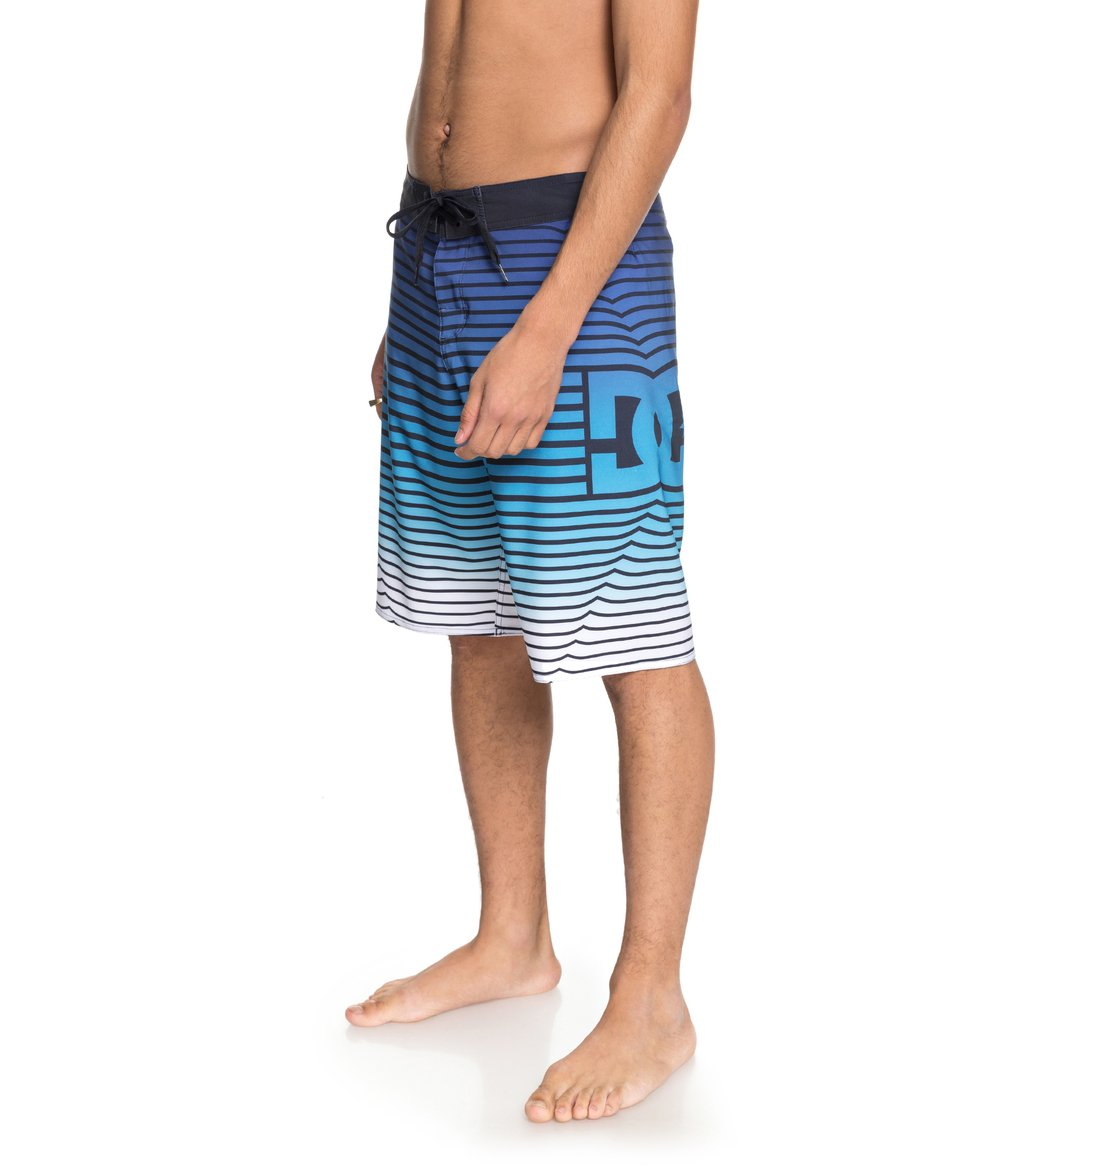 dc shoes Stroll It 22 - Boardshort da Uomo - Black - DC Shoes VqV8L